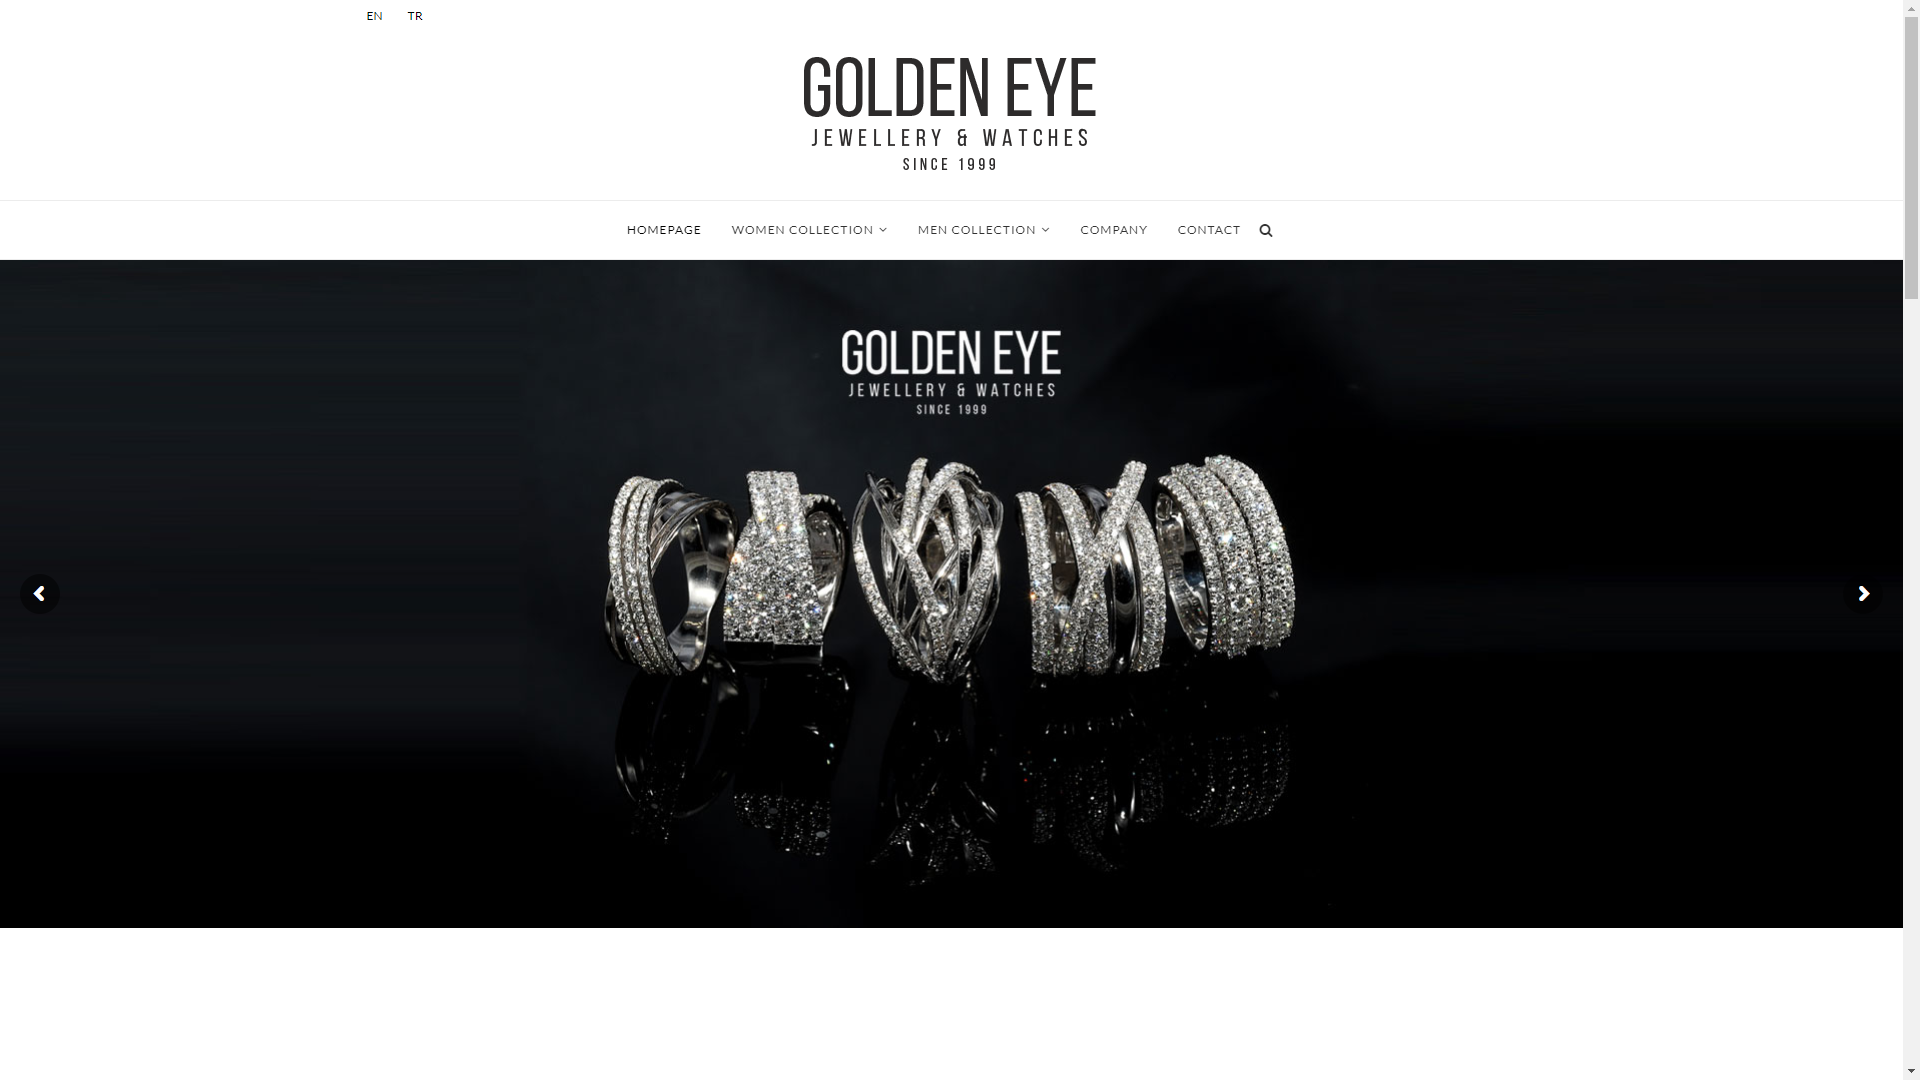 webfili-alanya-jewelry-shop-golden-eye-yenilendi-01.png